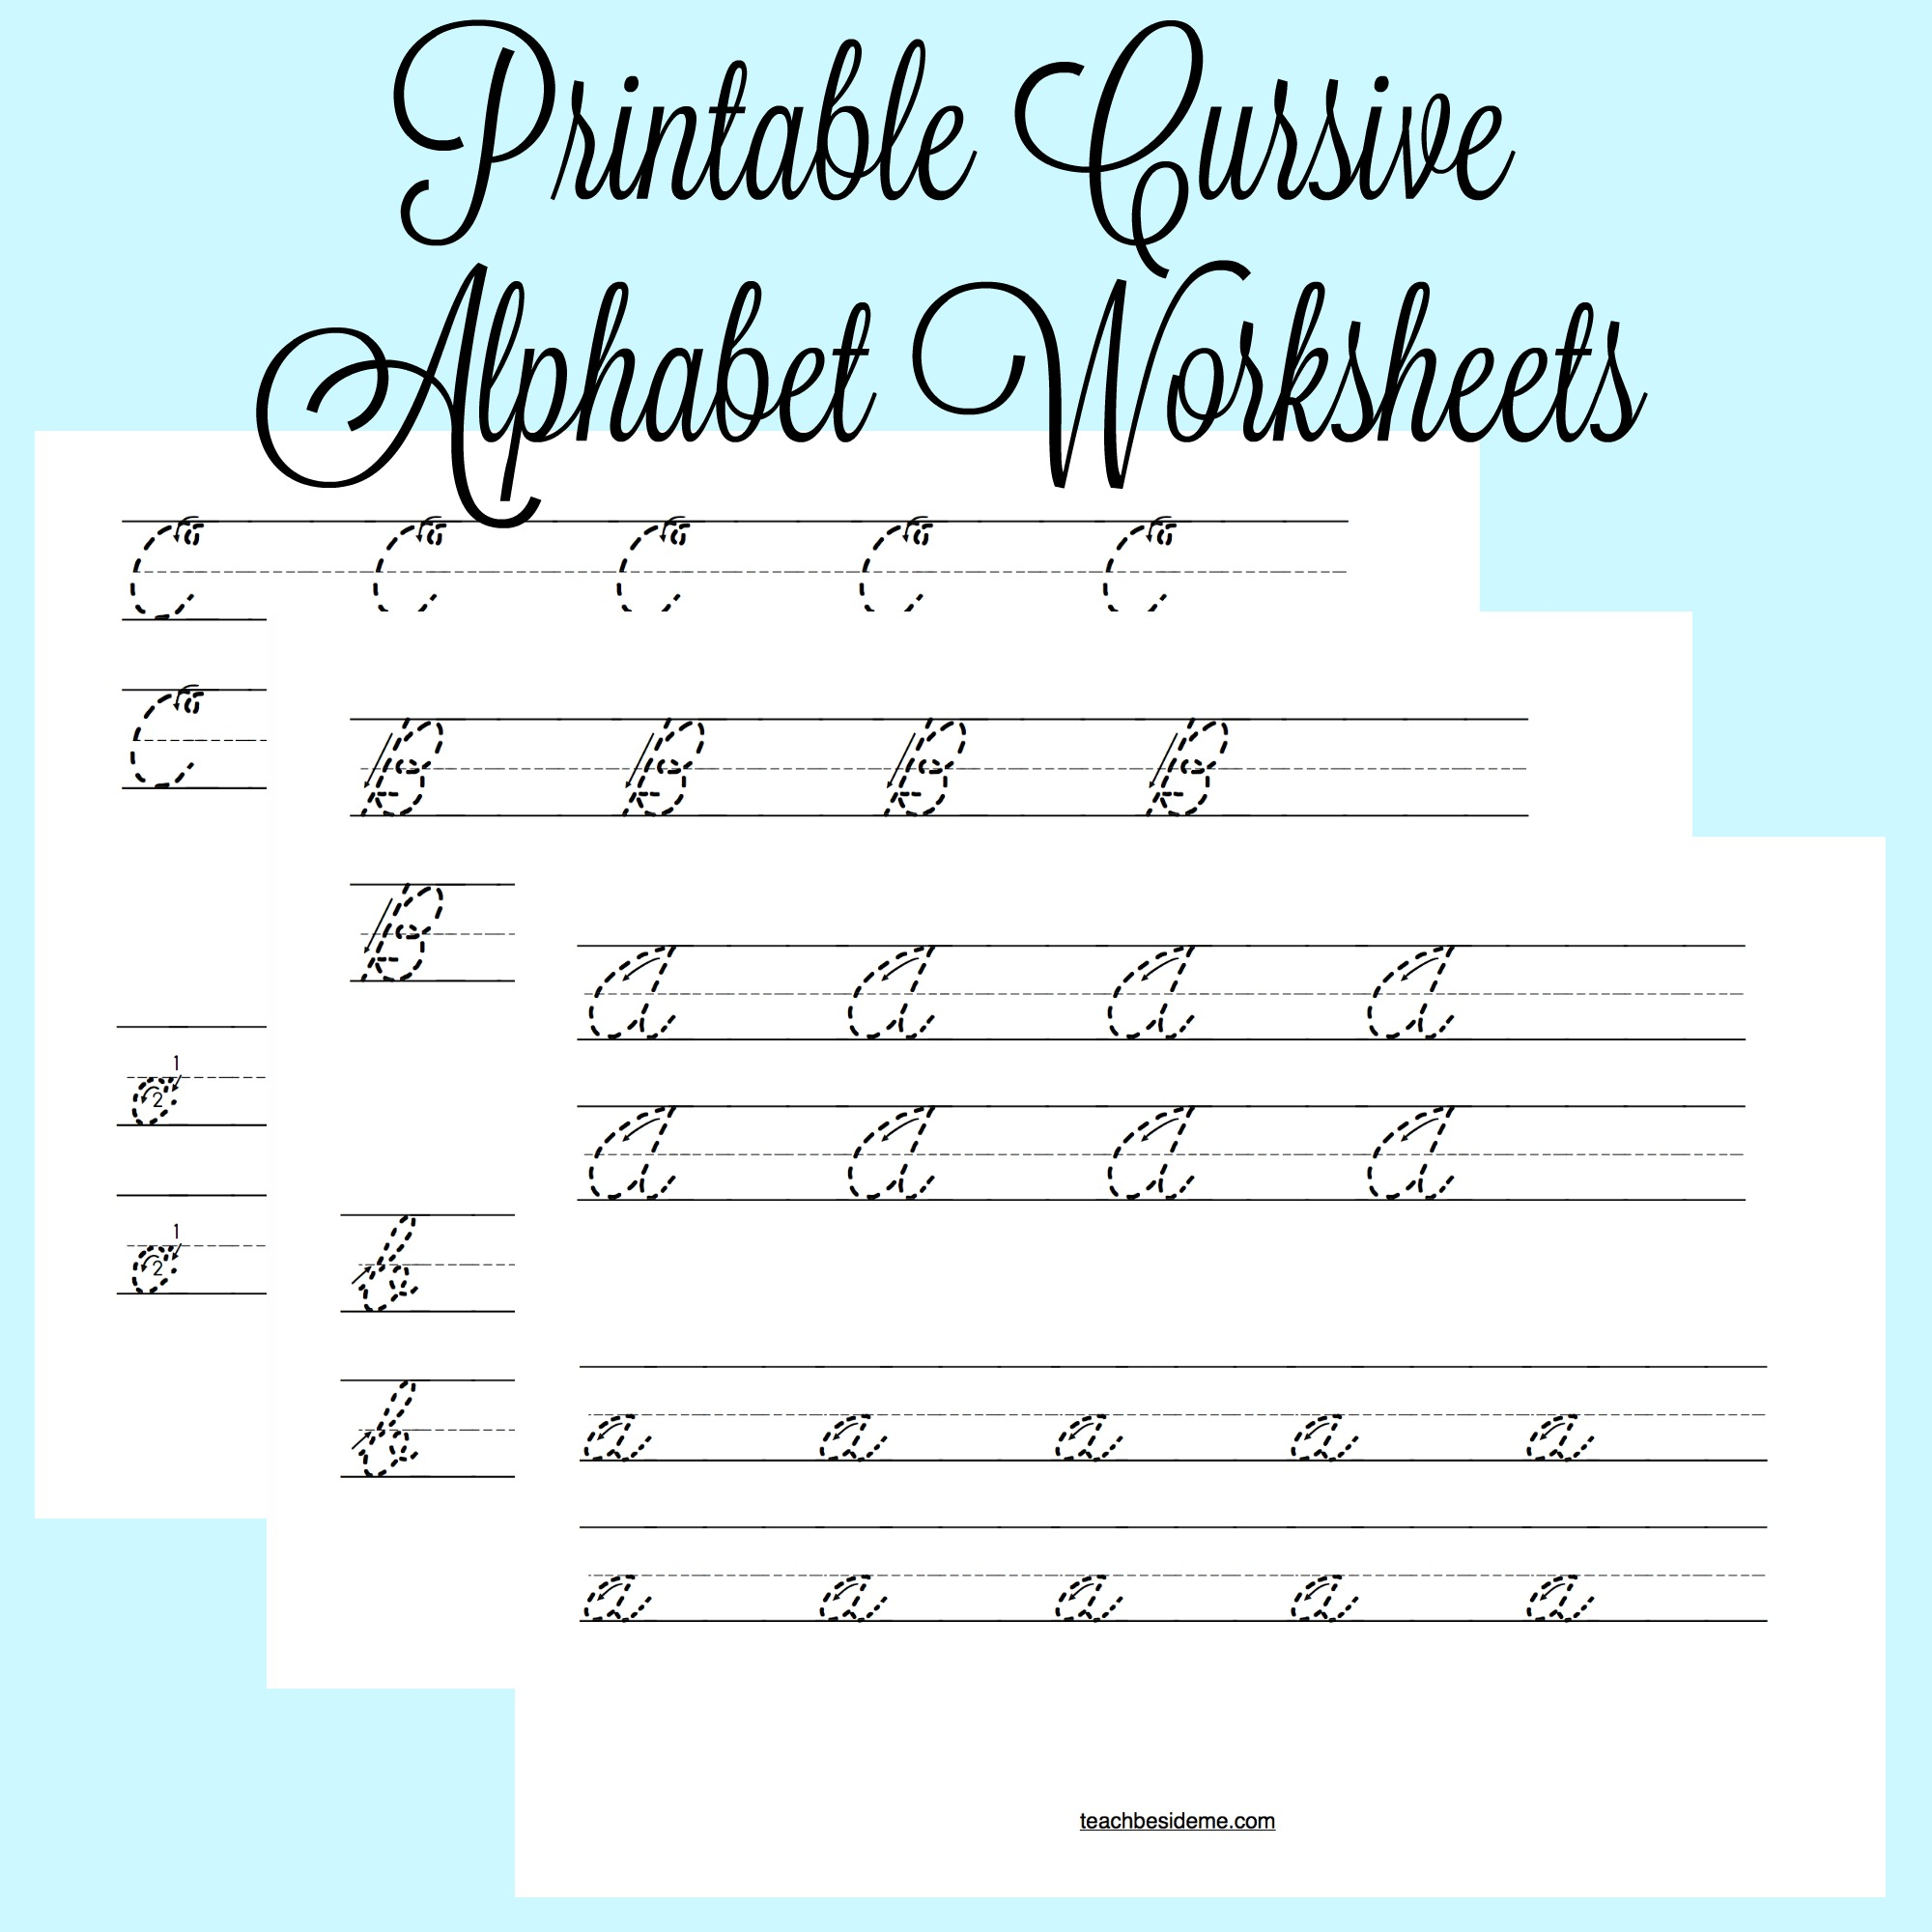 Worksheets Cursive Letters Worksheet printable cursive alphabet worksheets teach beside me worksheets